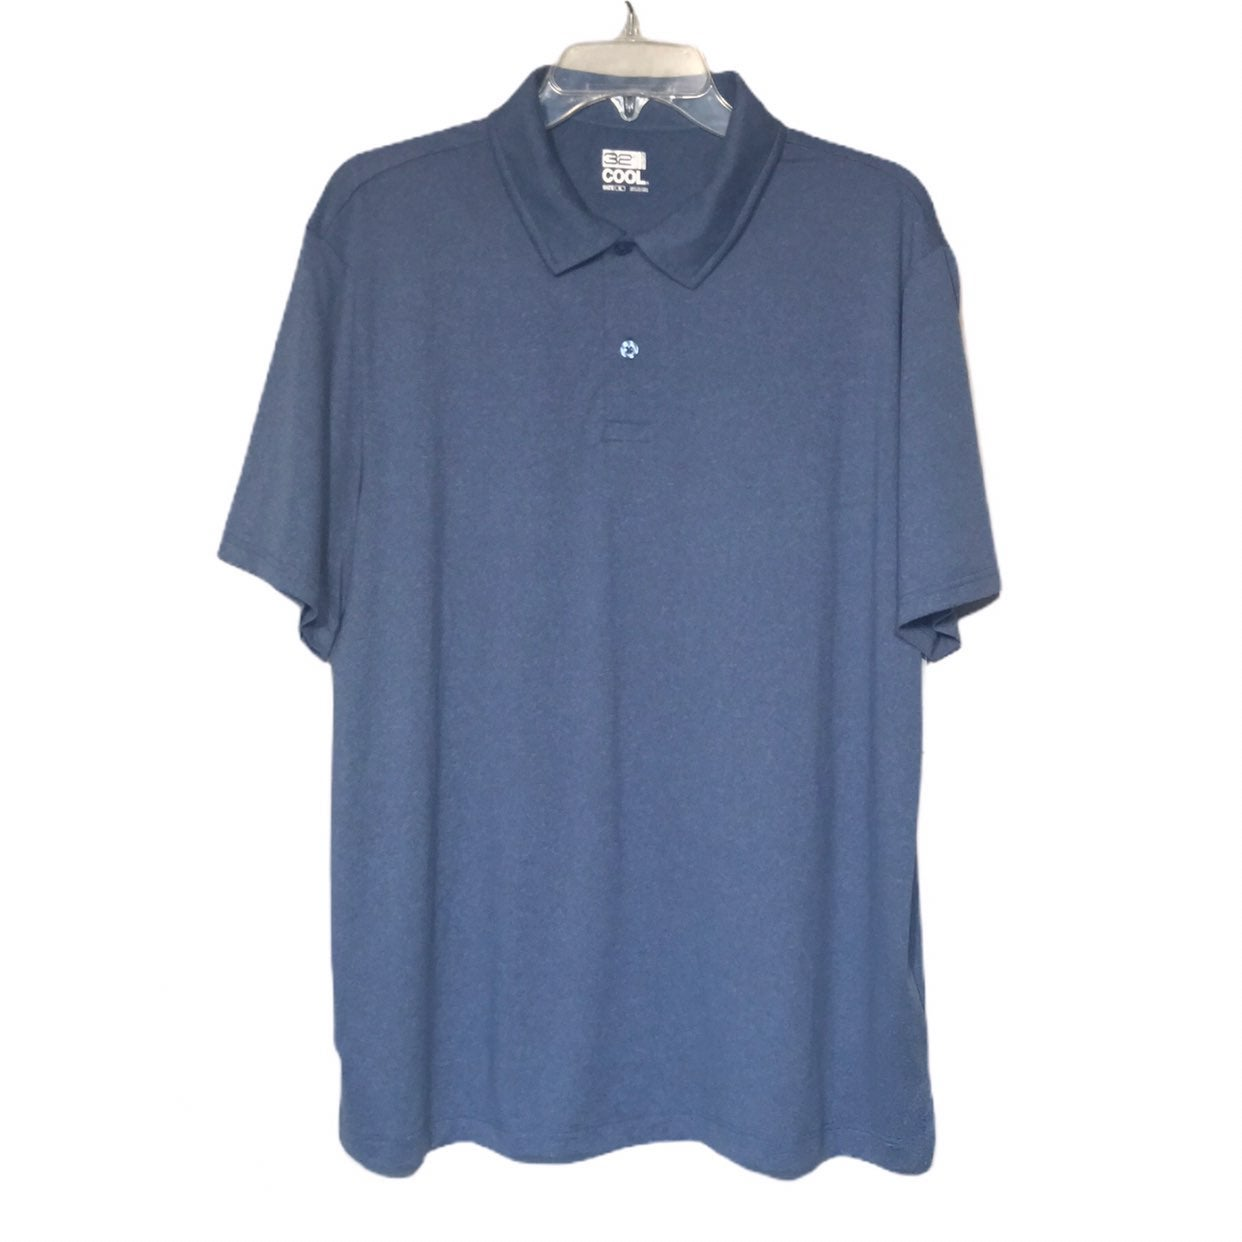 32 Degrees Cool Pacific Space Dye Shirt